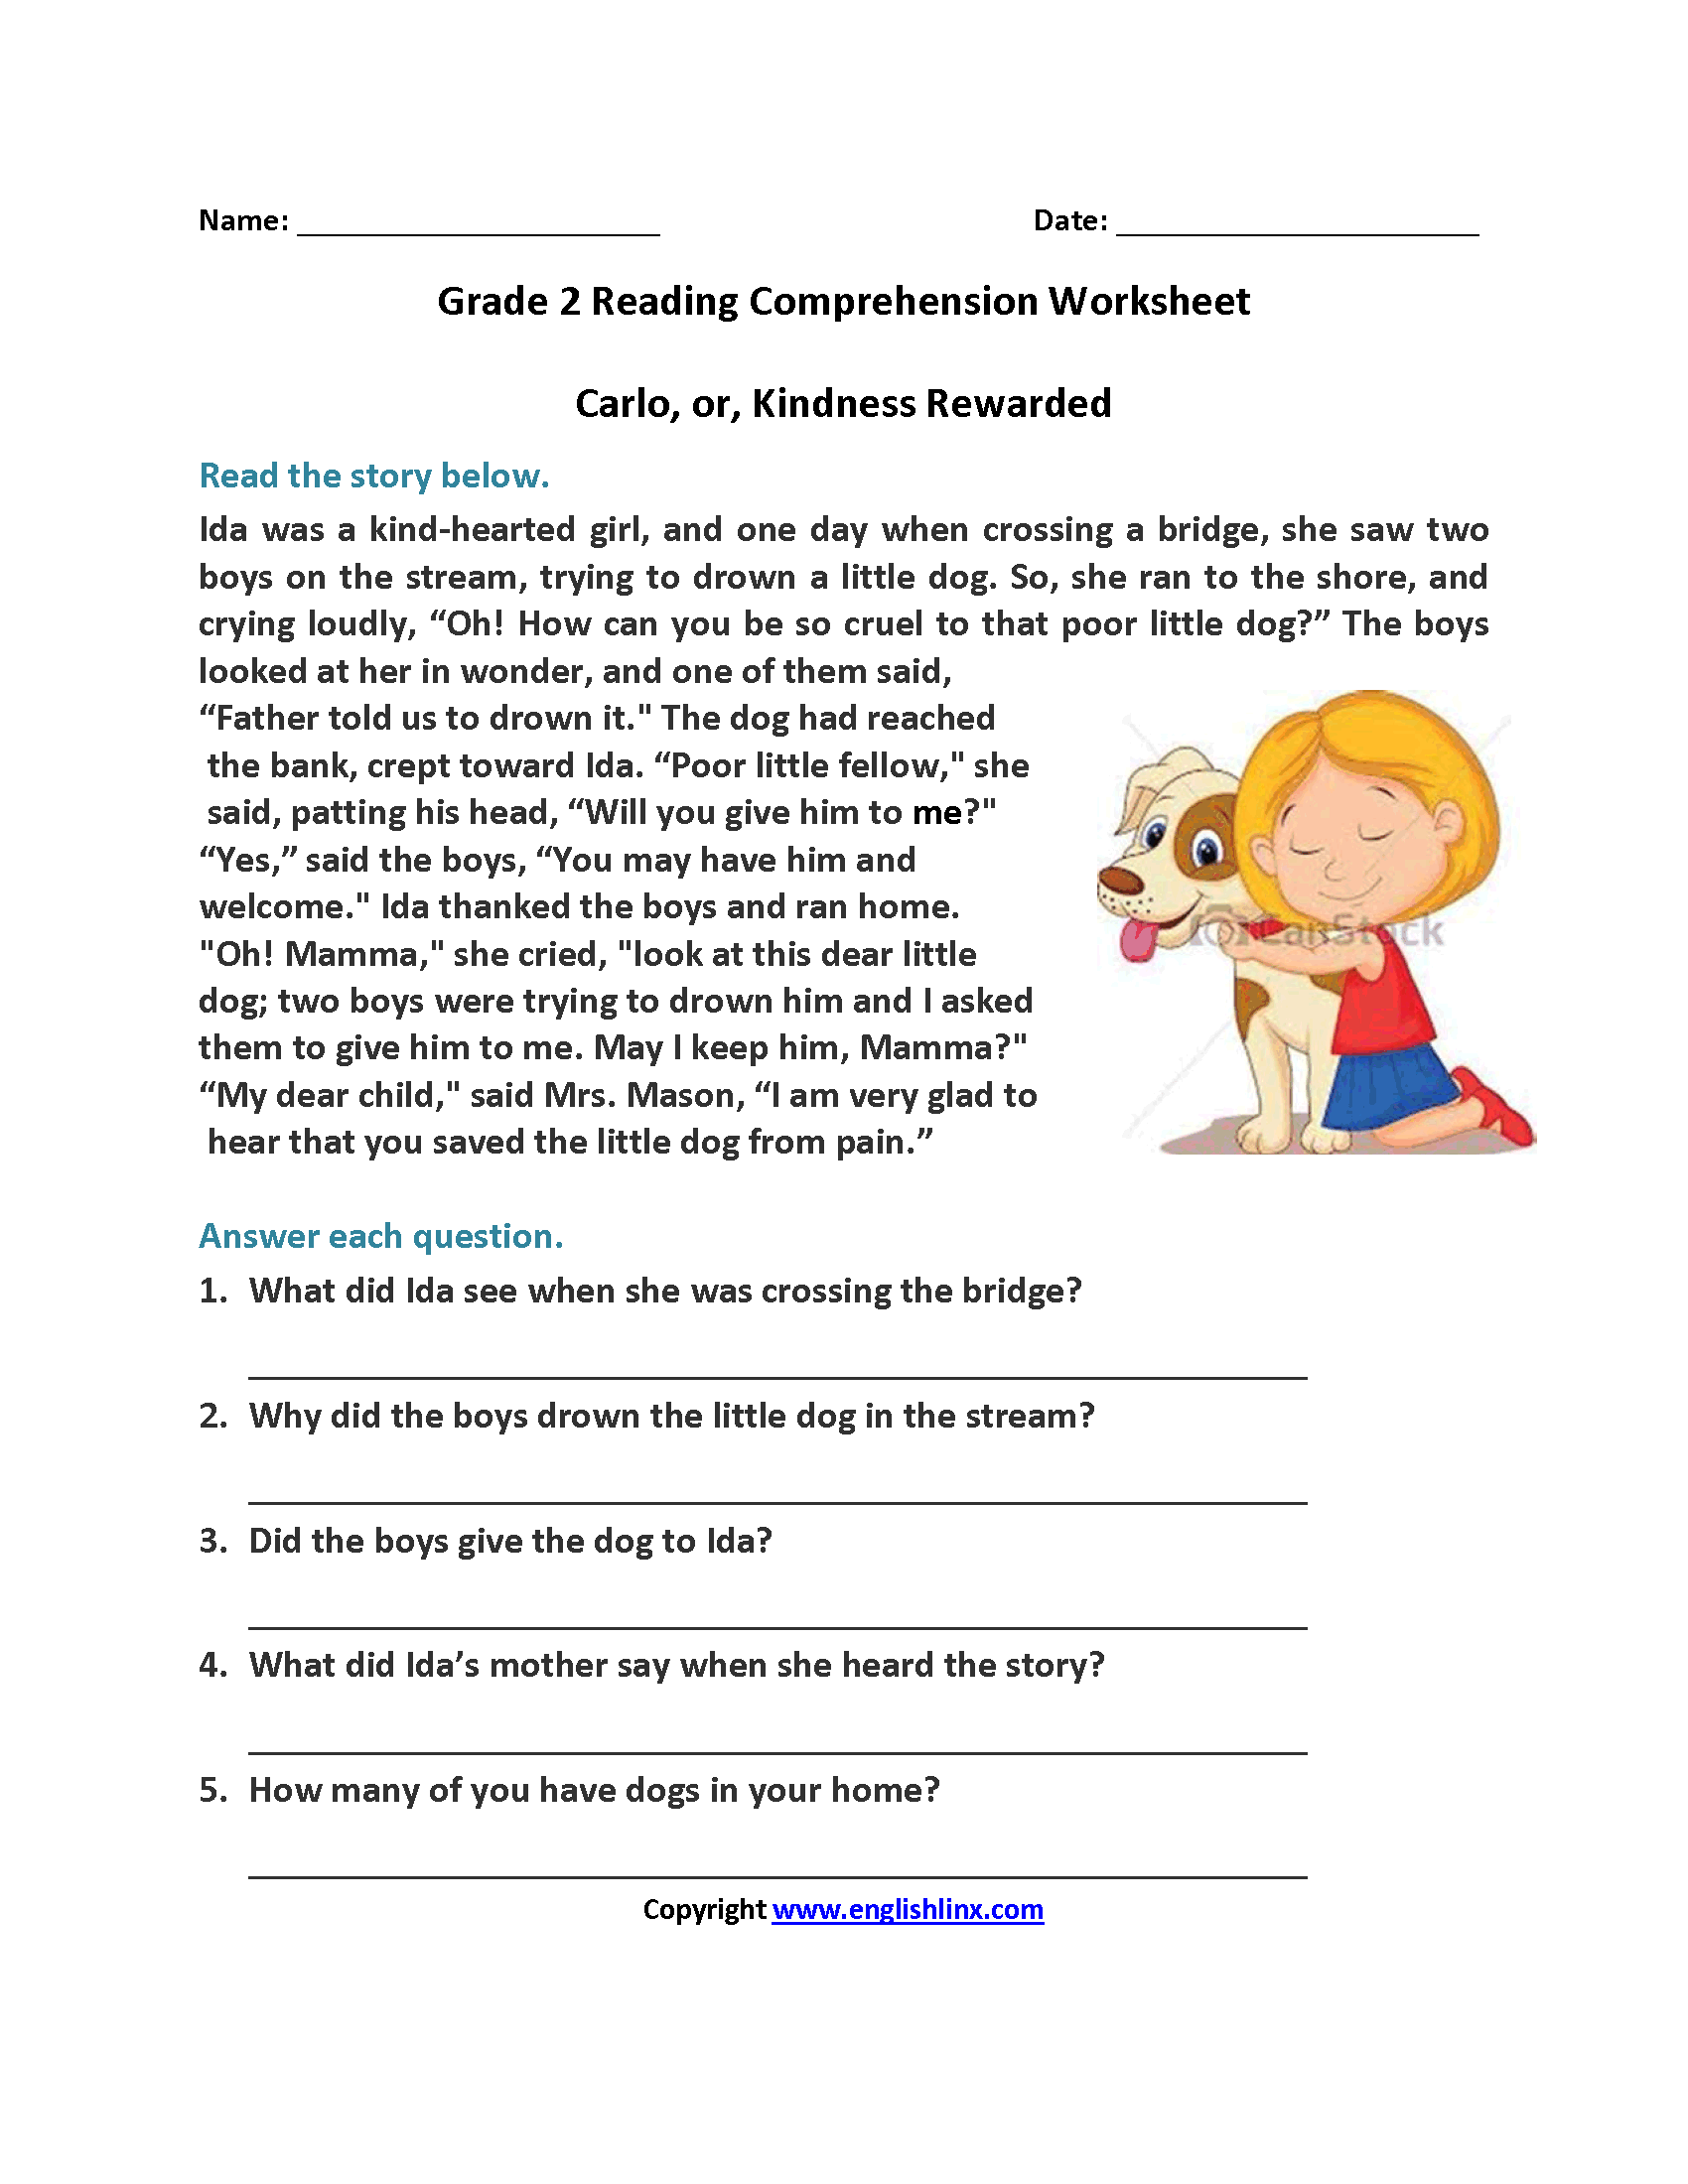 2nd Grade Reading Comprehension Worksheets : Carlo or kindness rewarded second grade reading worksheets